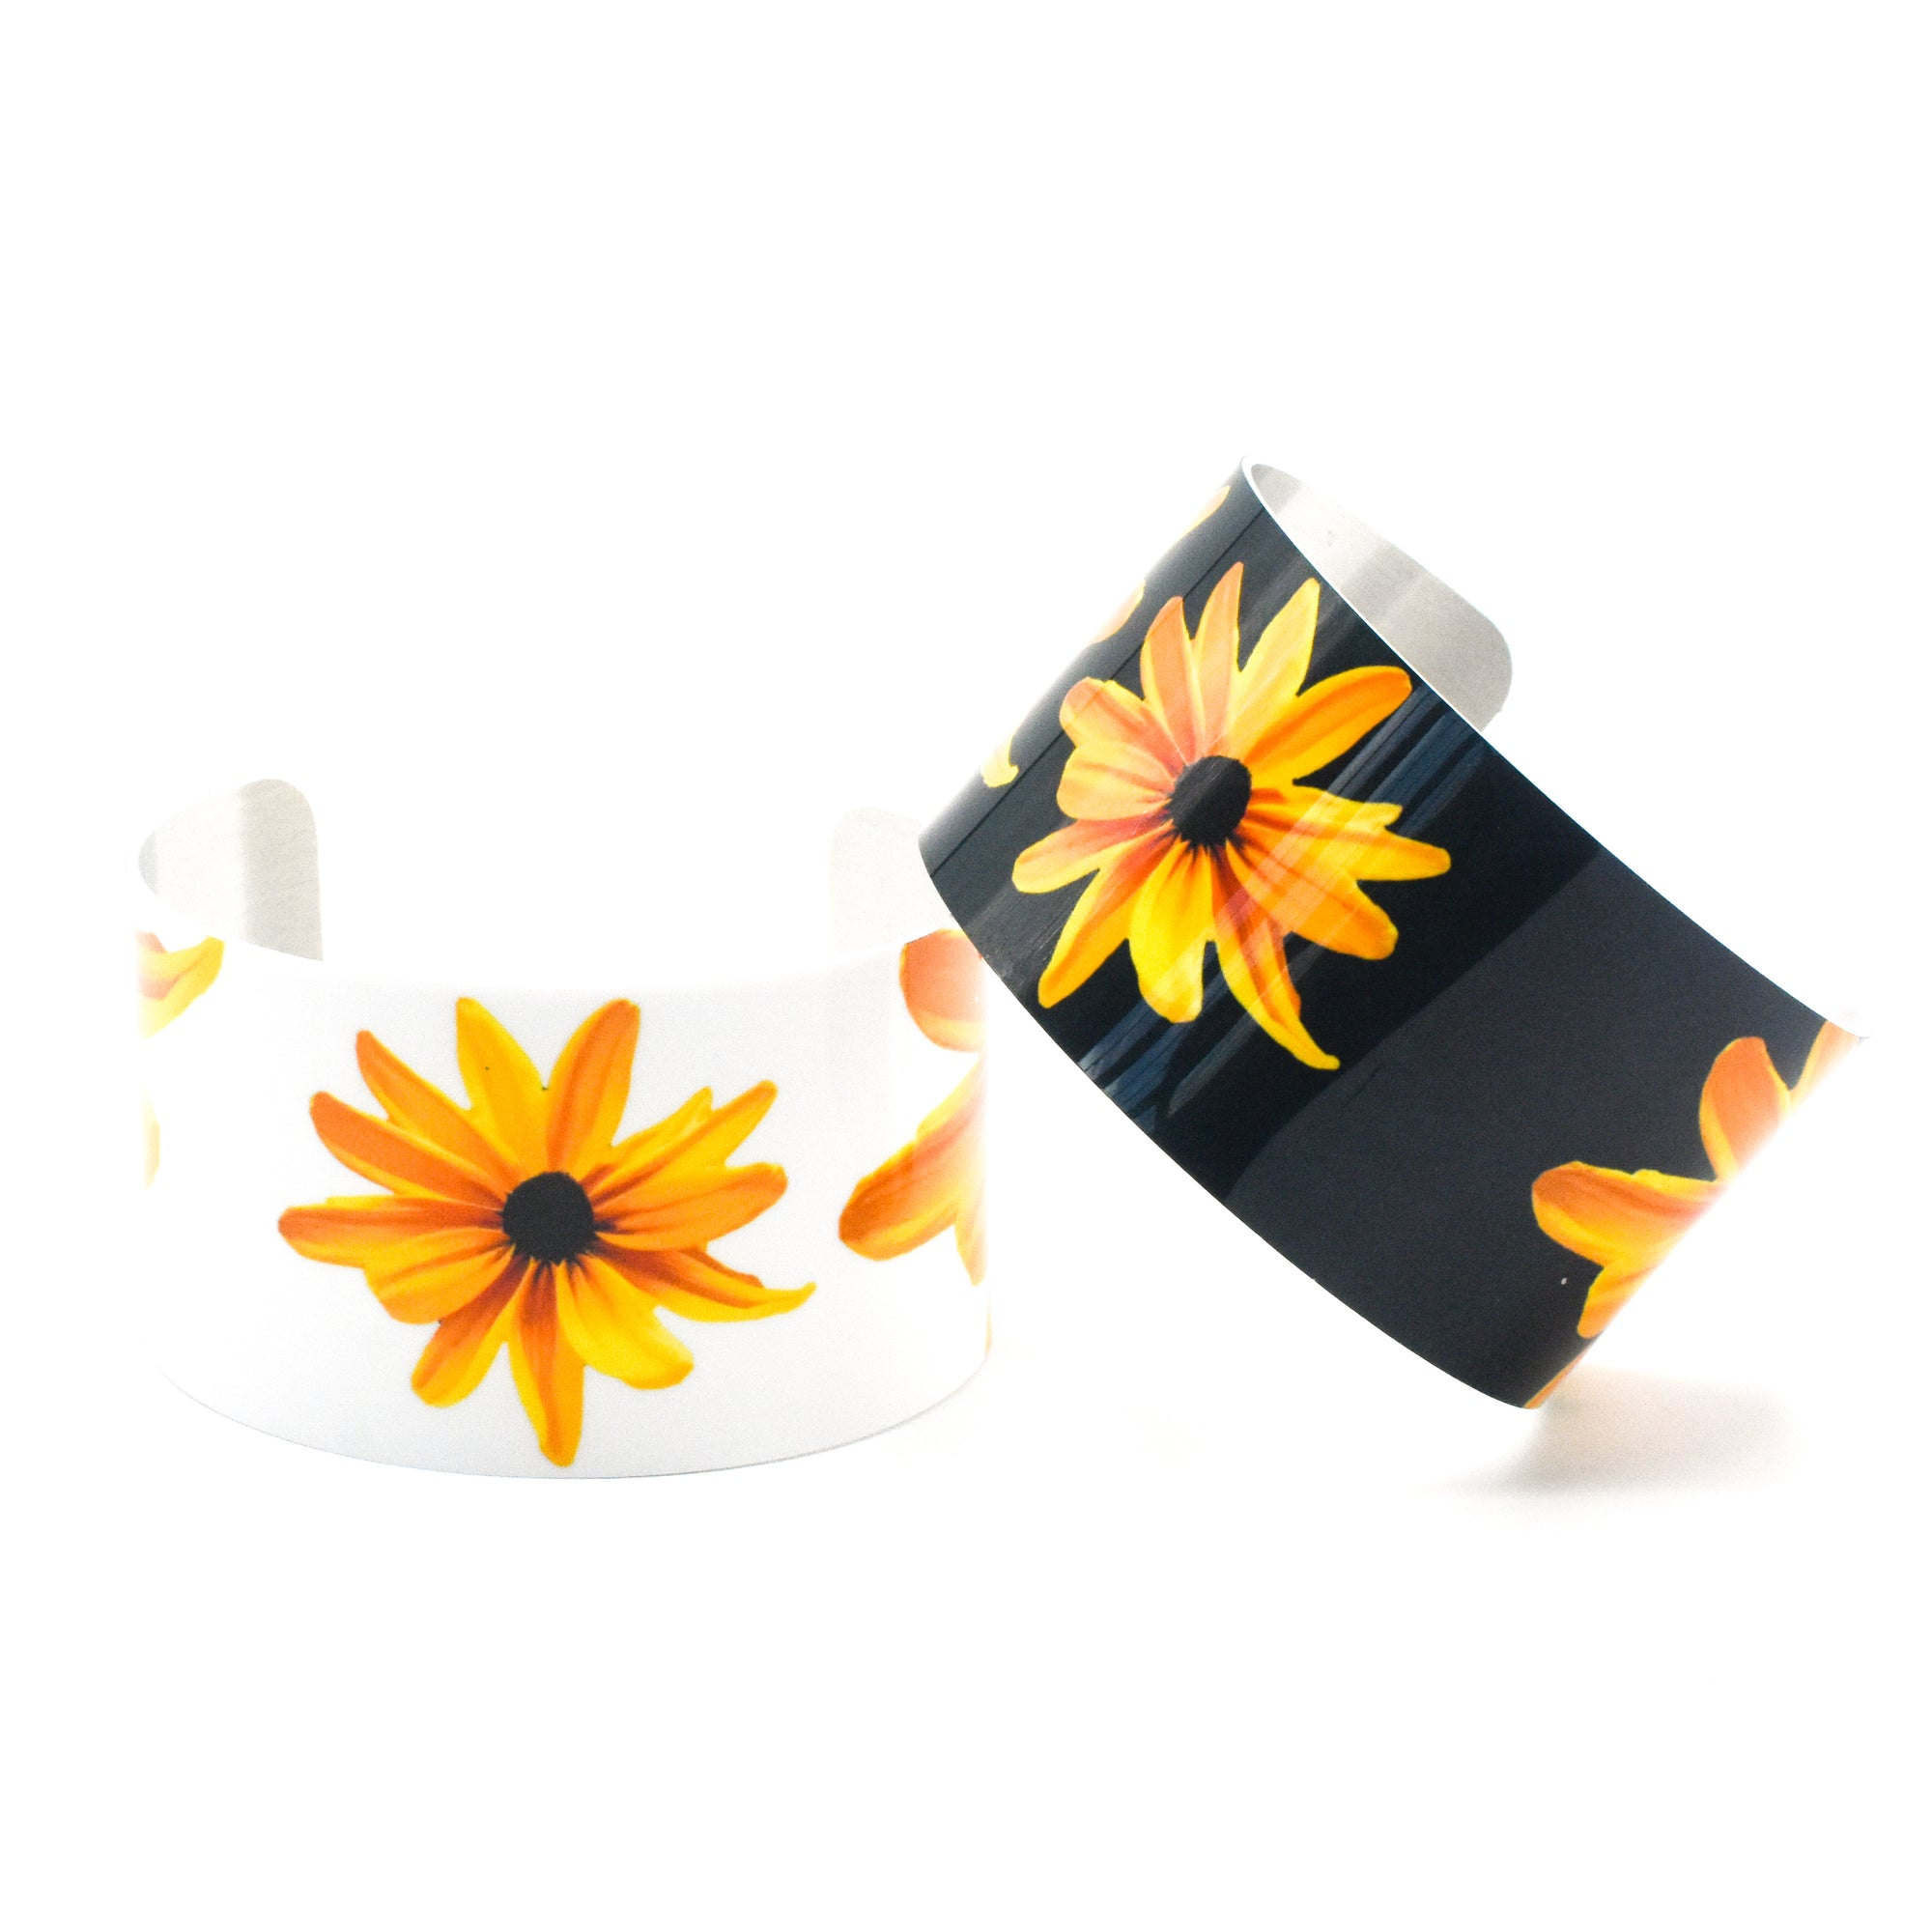 Black & White Black Eyed Susan Cuff Bracelets | Wear the Wonder